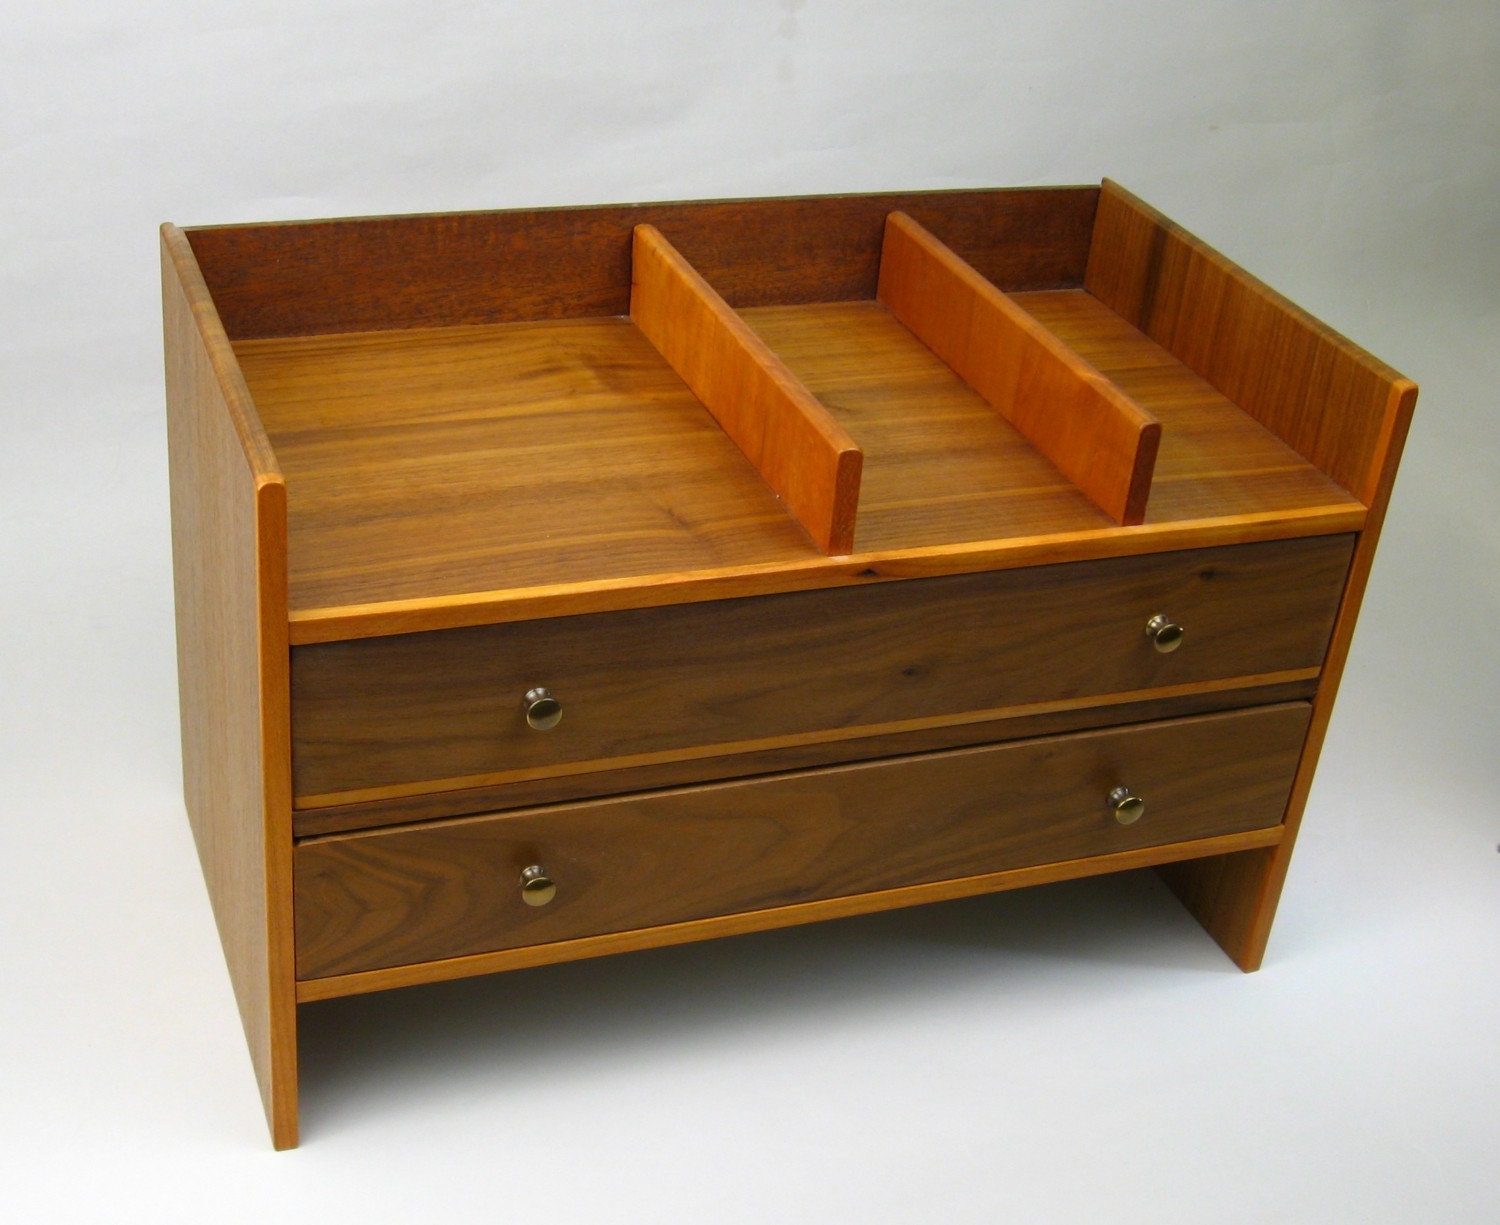 Desk organizer cherry and walnut on sale - Cherry desk organizer ...